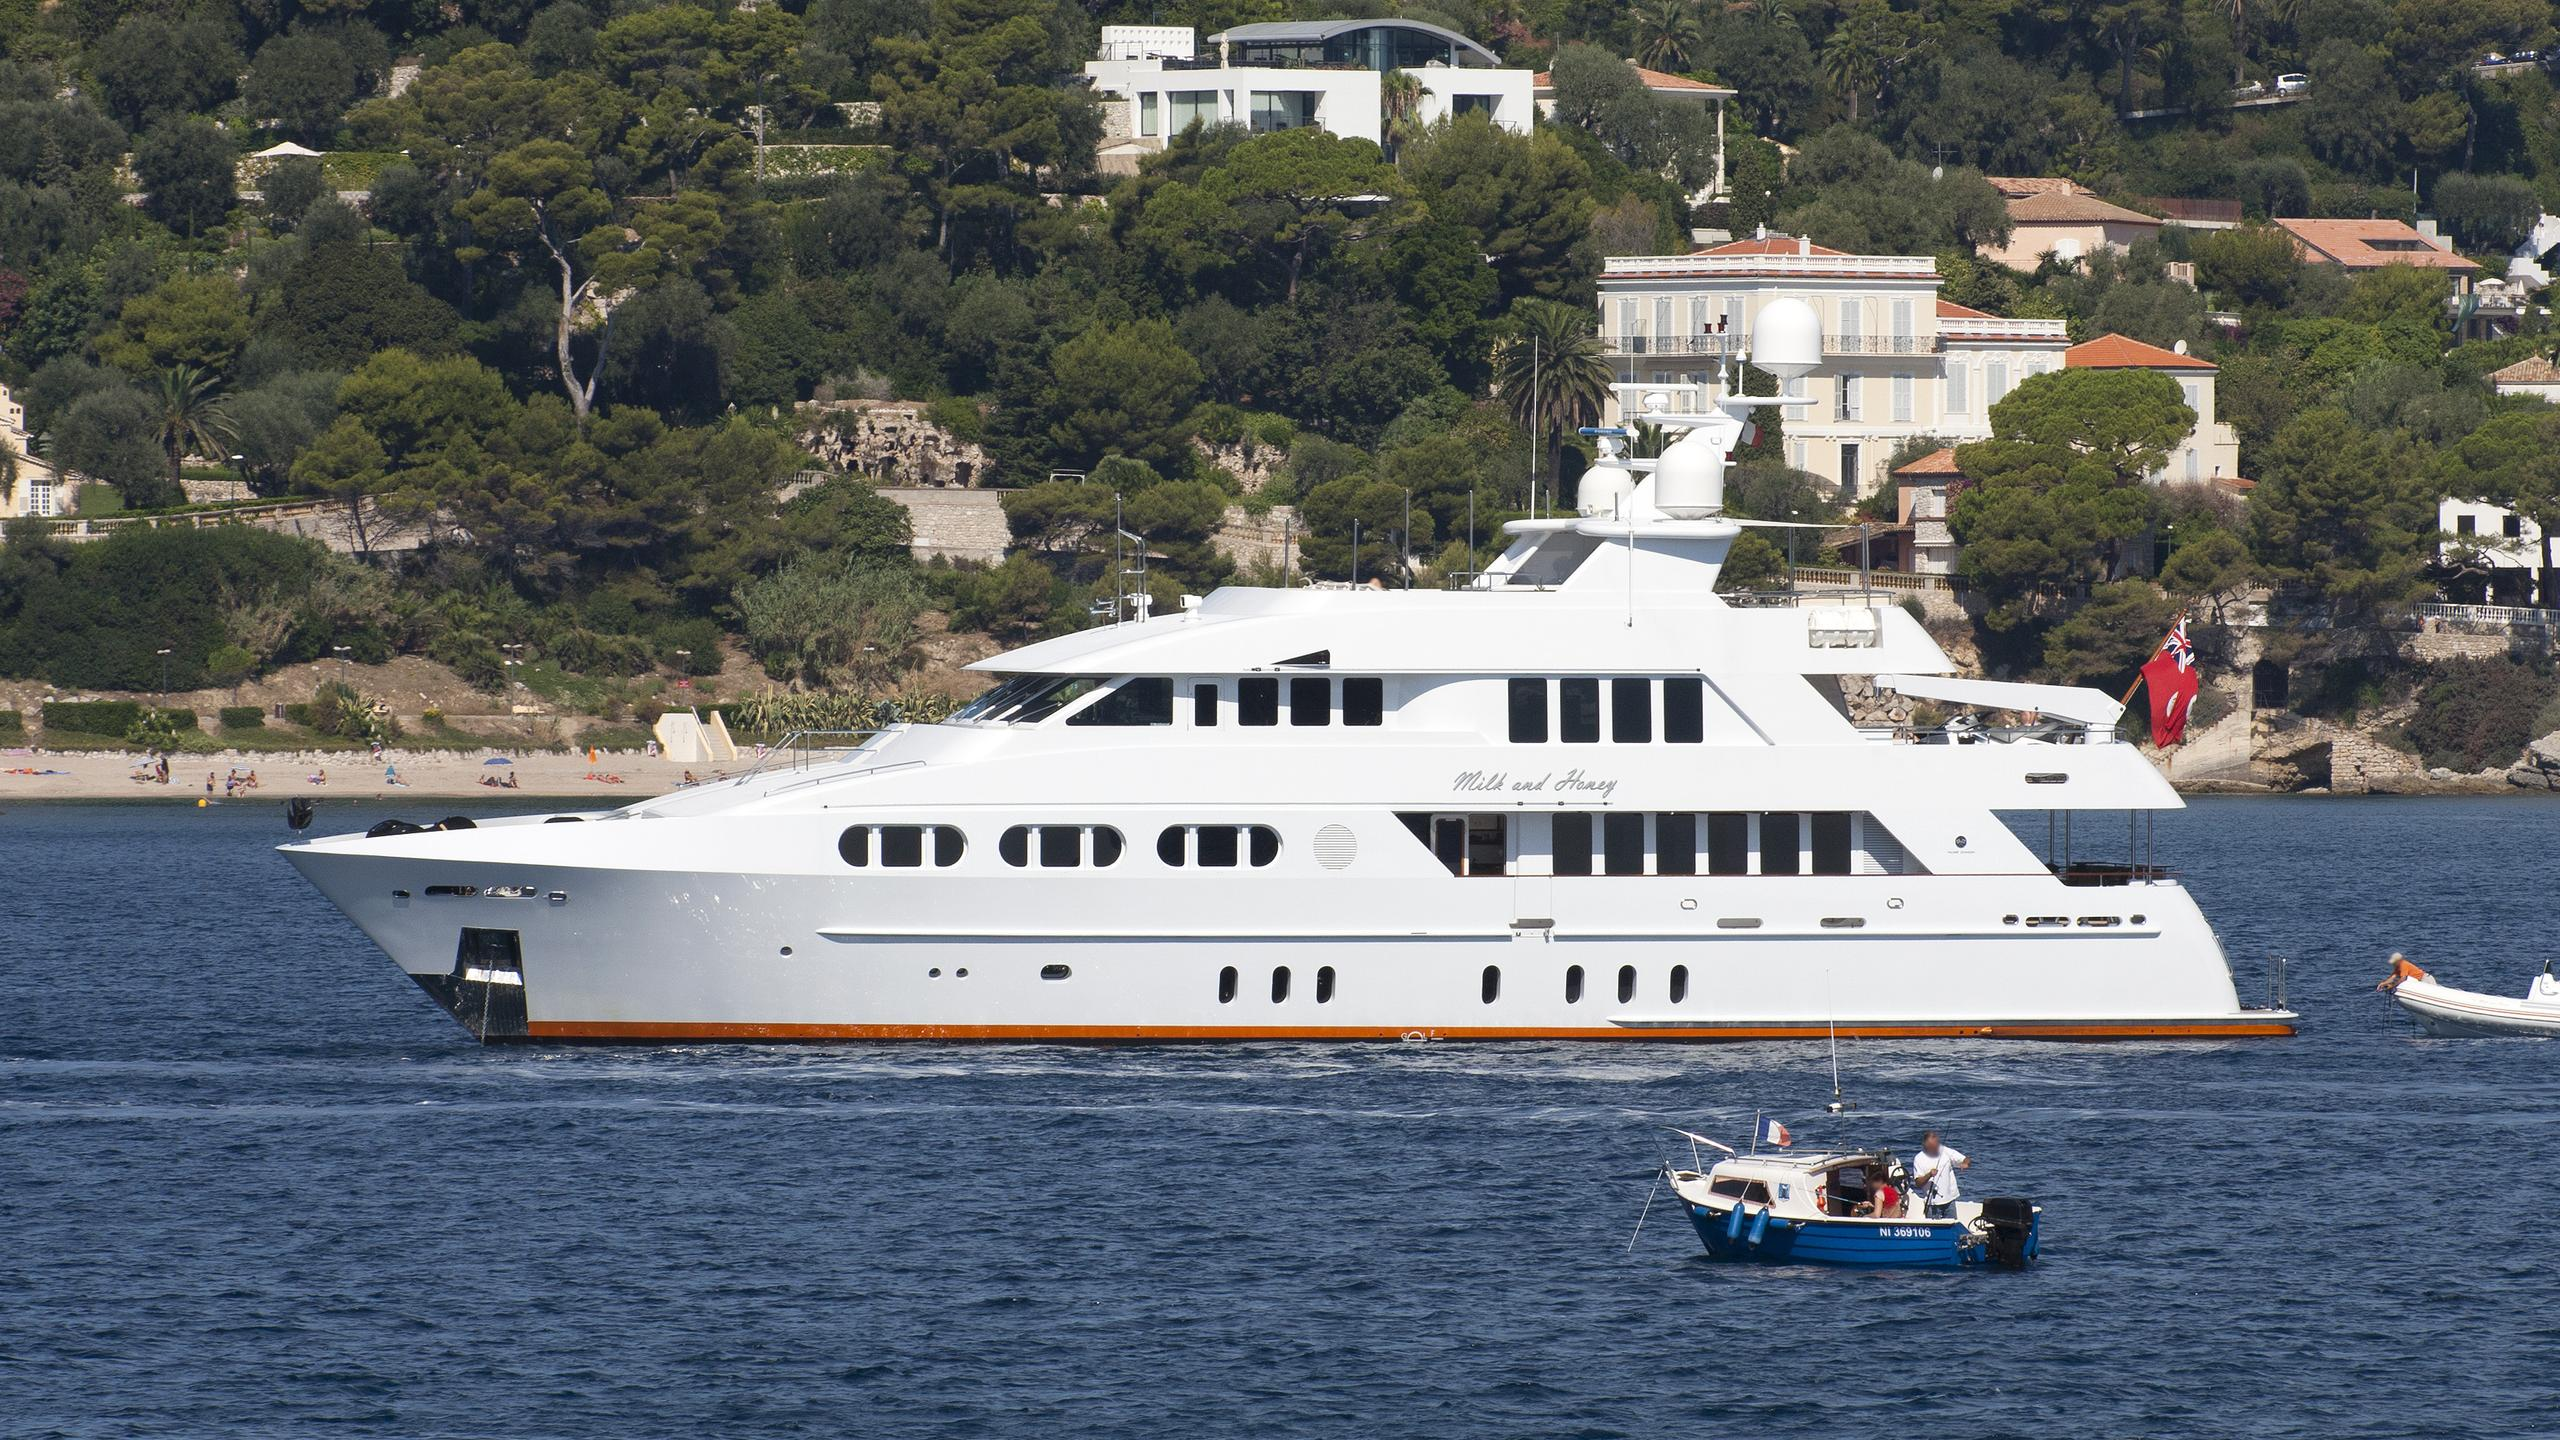 milk-and-honey-motor-yacht-palmer-johnson-2003-38m-profile